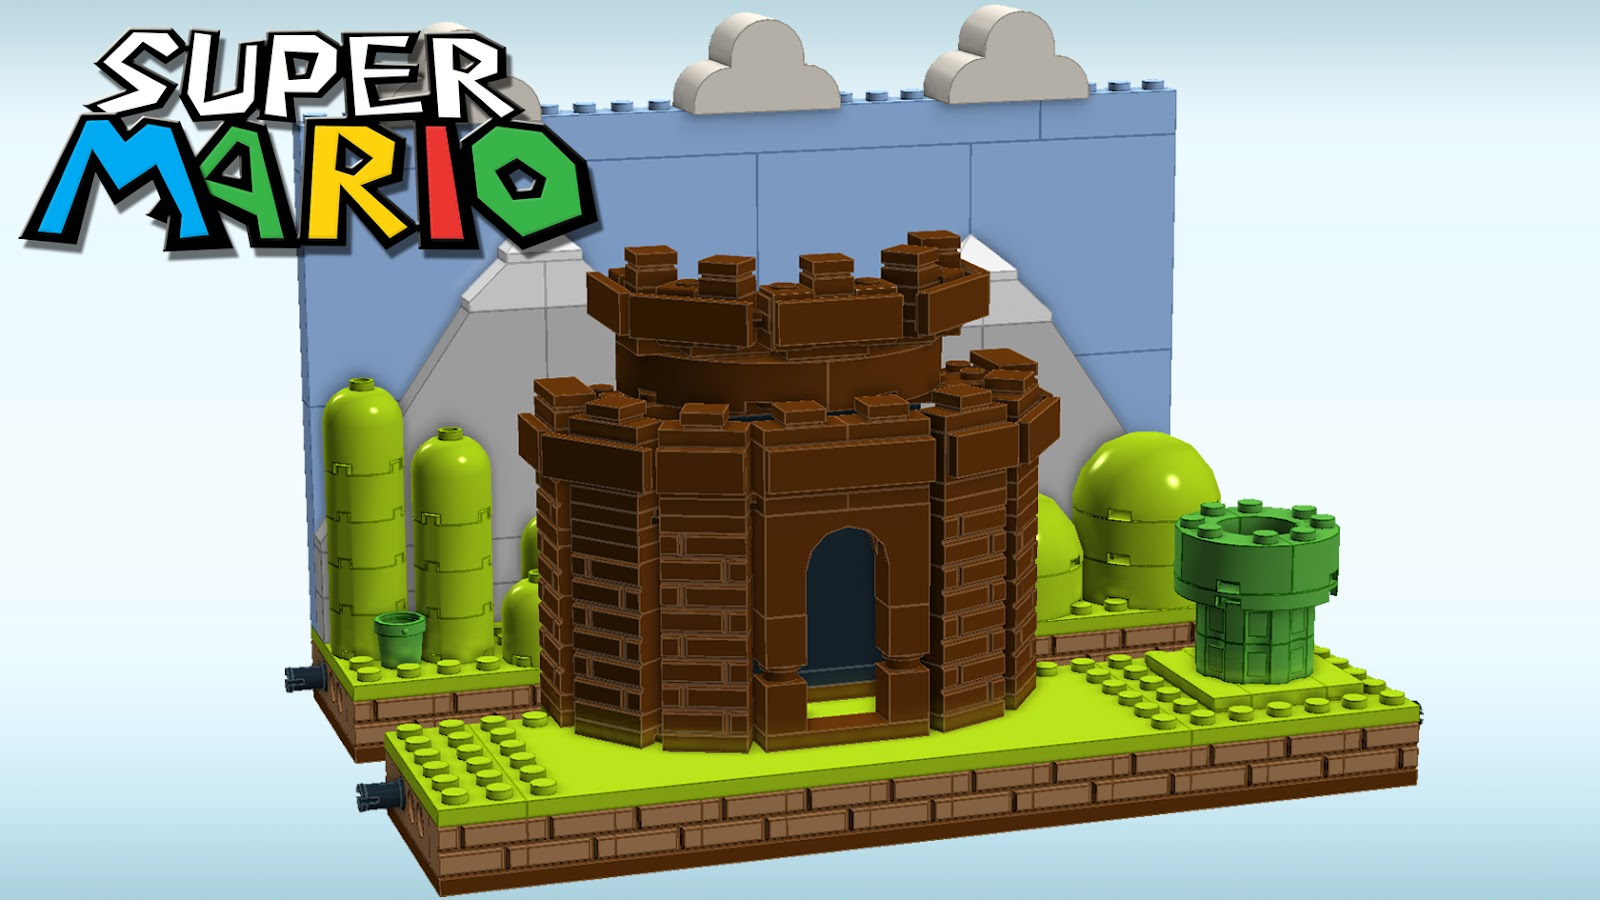 Idea Infinity Plan Continuum The Super Mario Lego Project